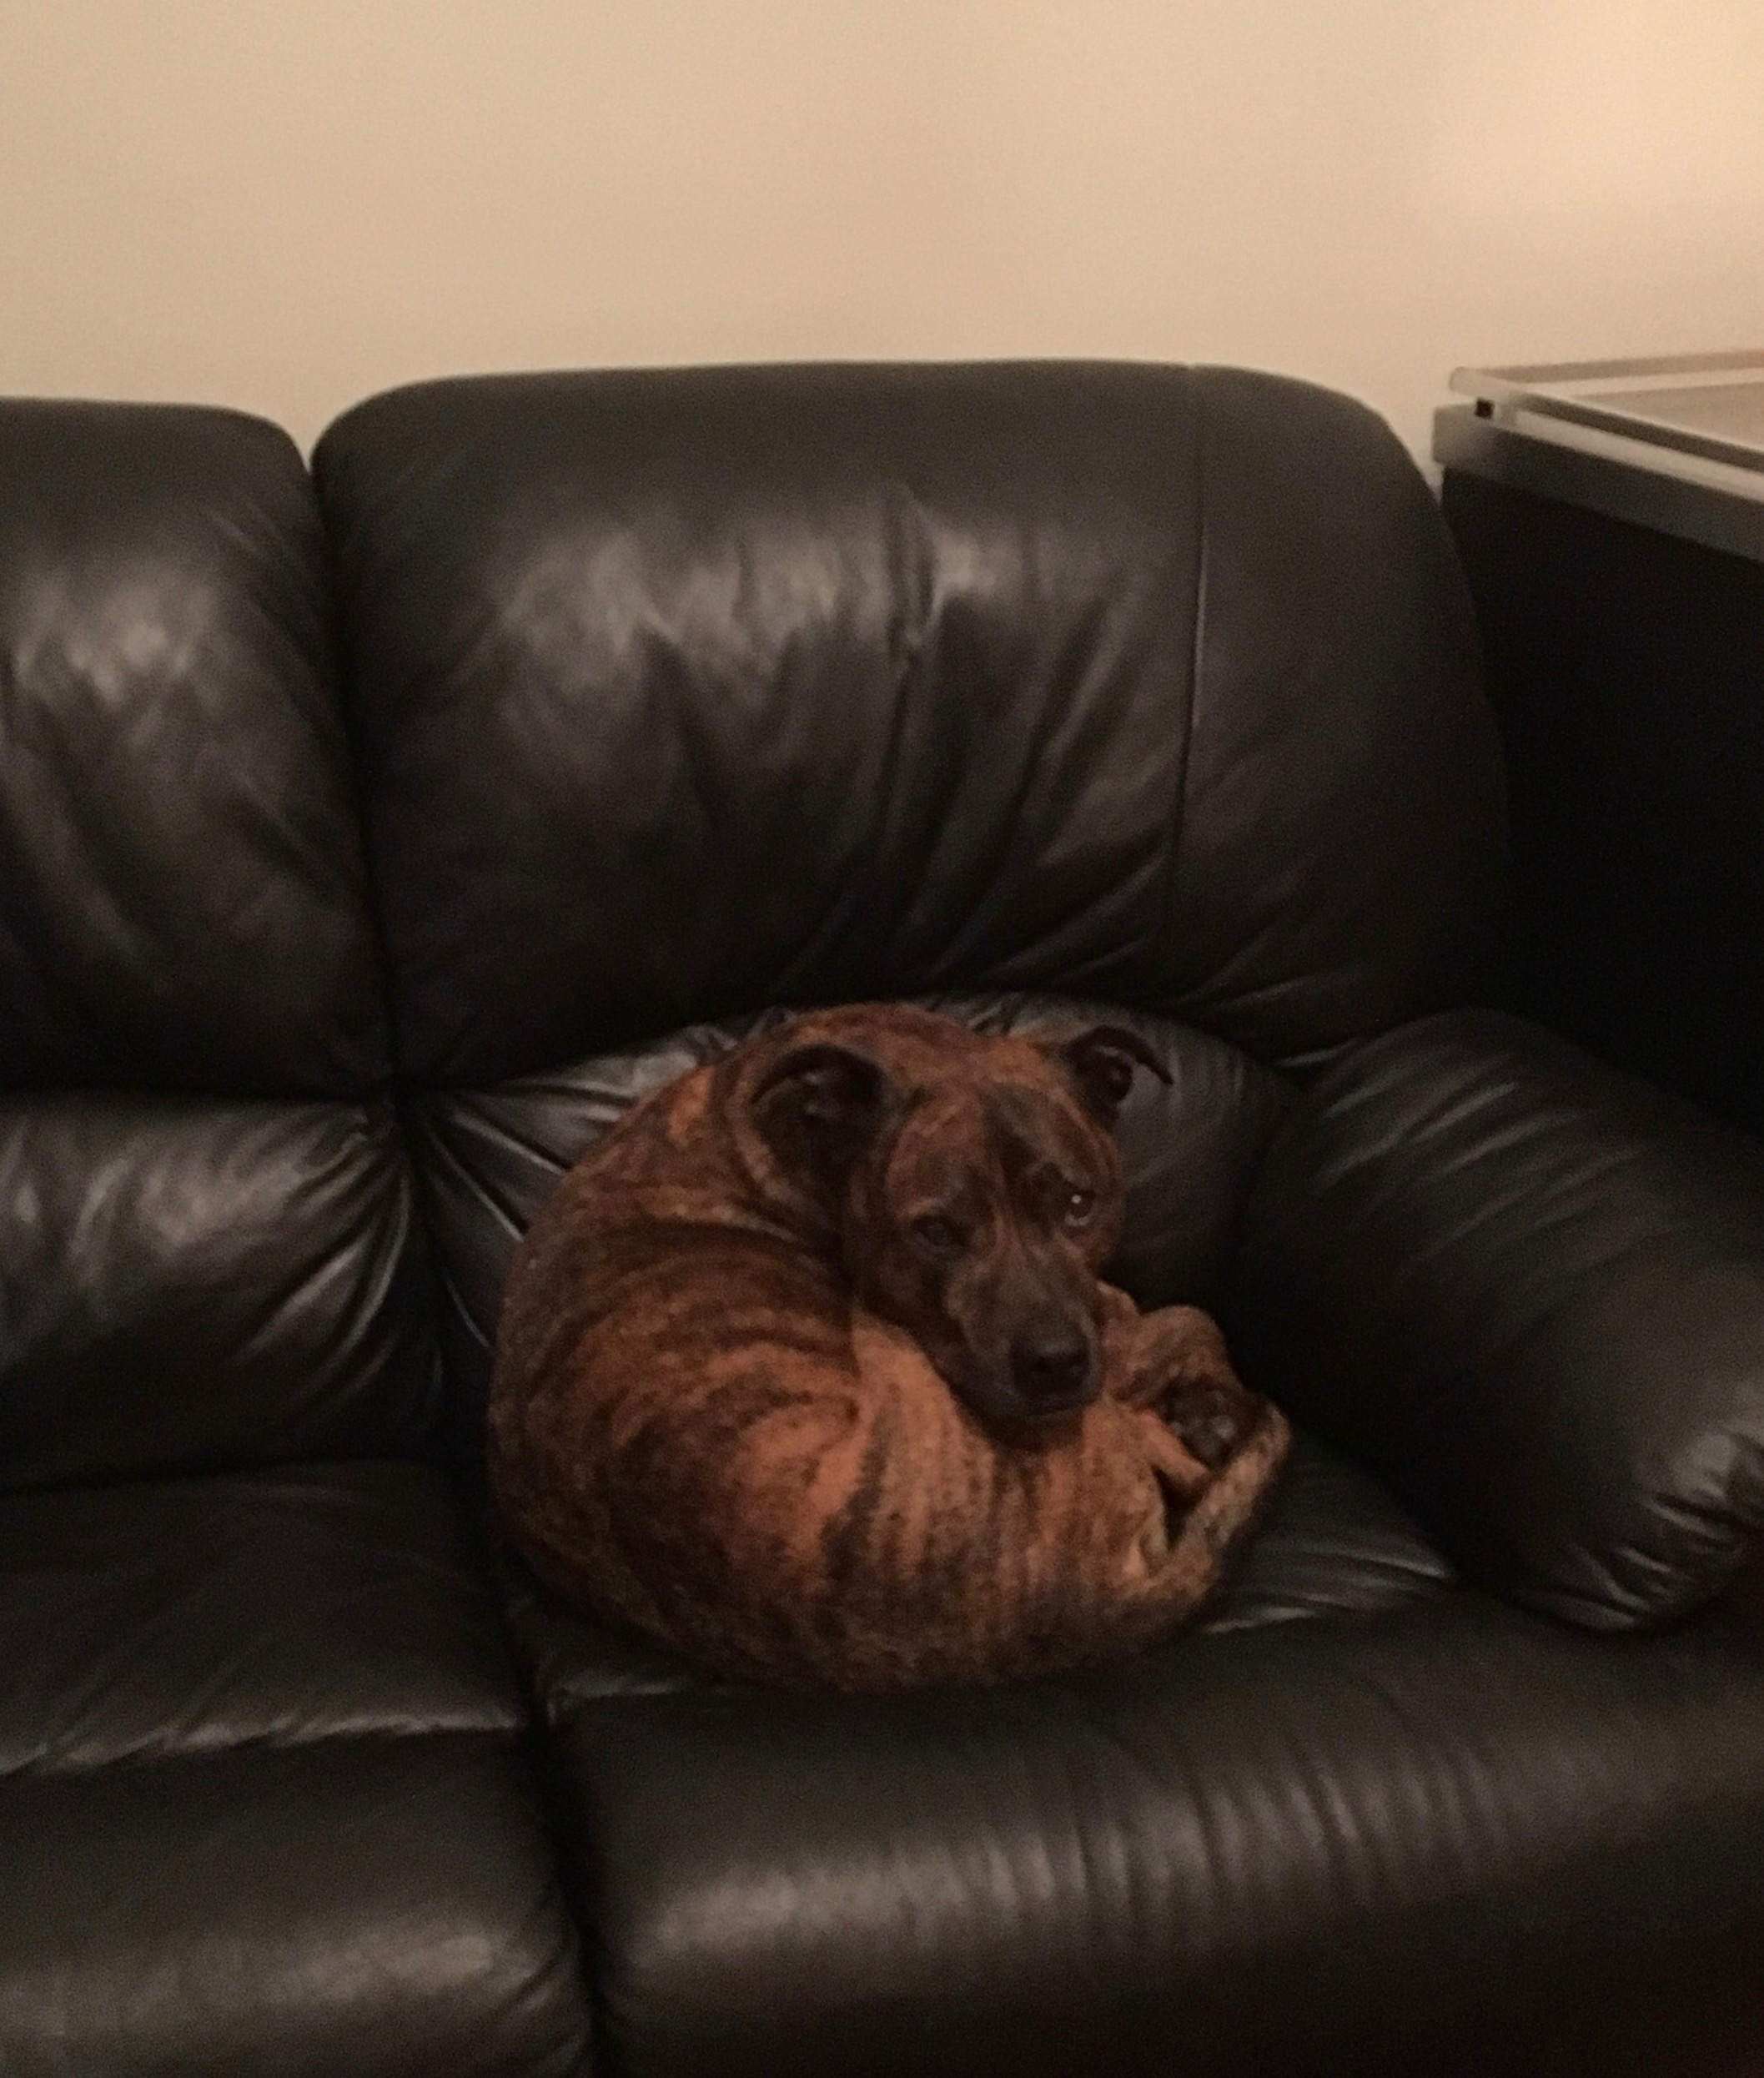 Brindled Hound Curled Up On A Sofa And Looking At The Camera